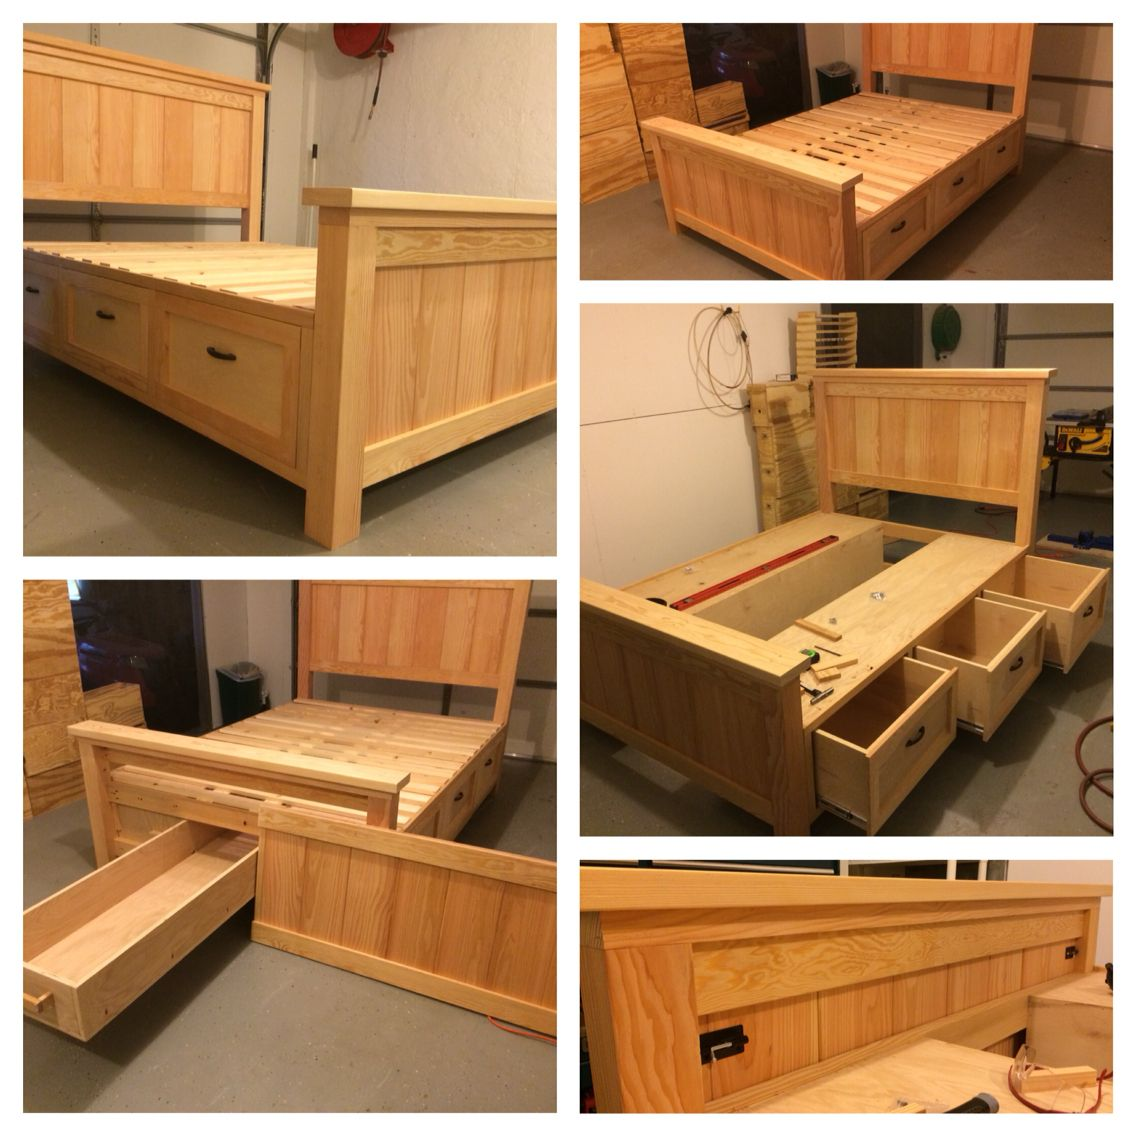 I just finished this build It is a Queen Farmhouse Storage bed with a hidden